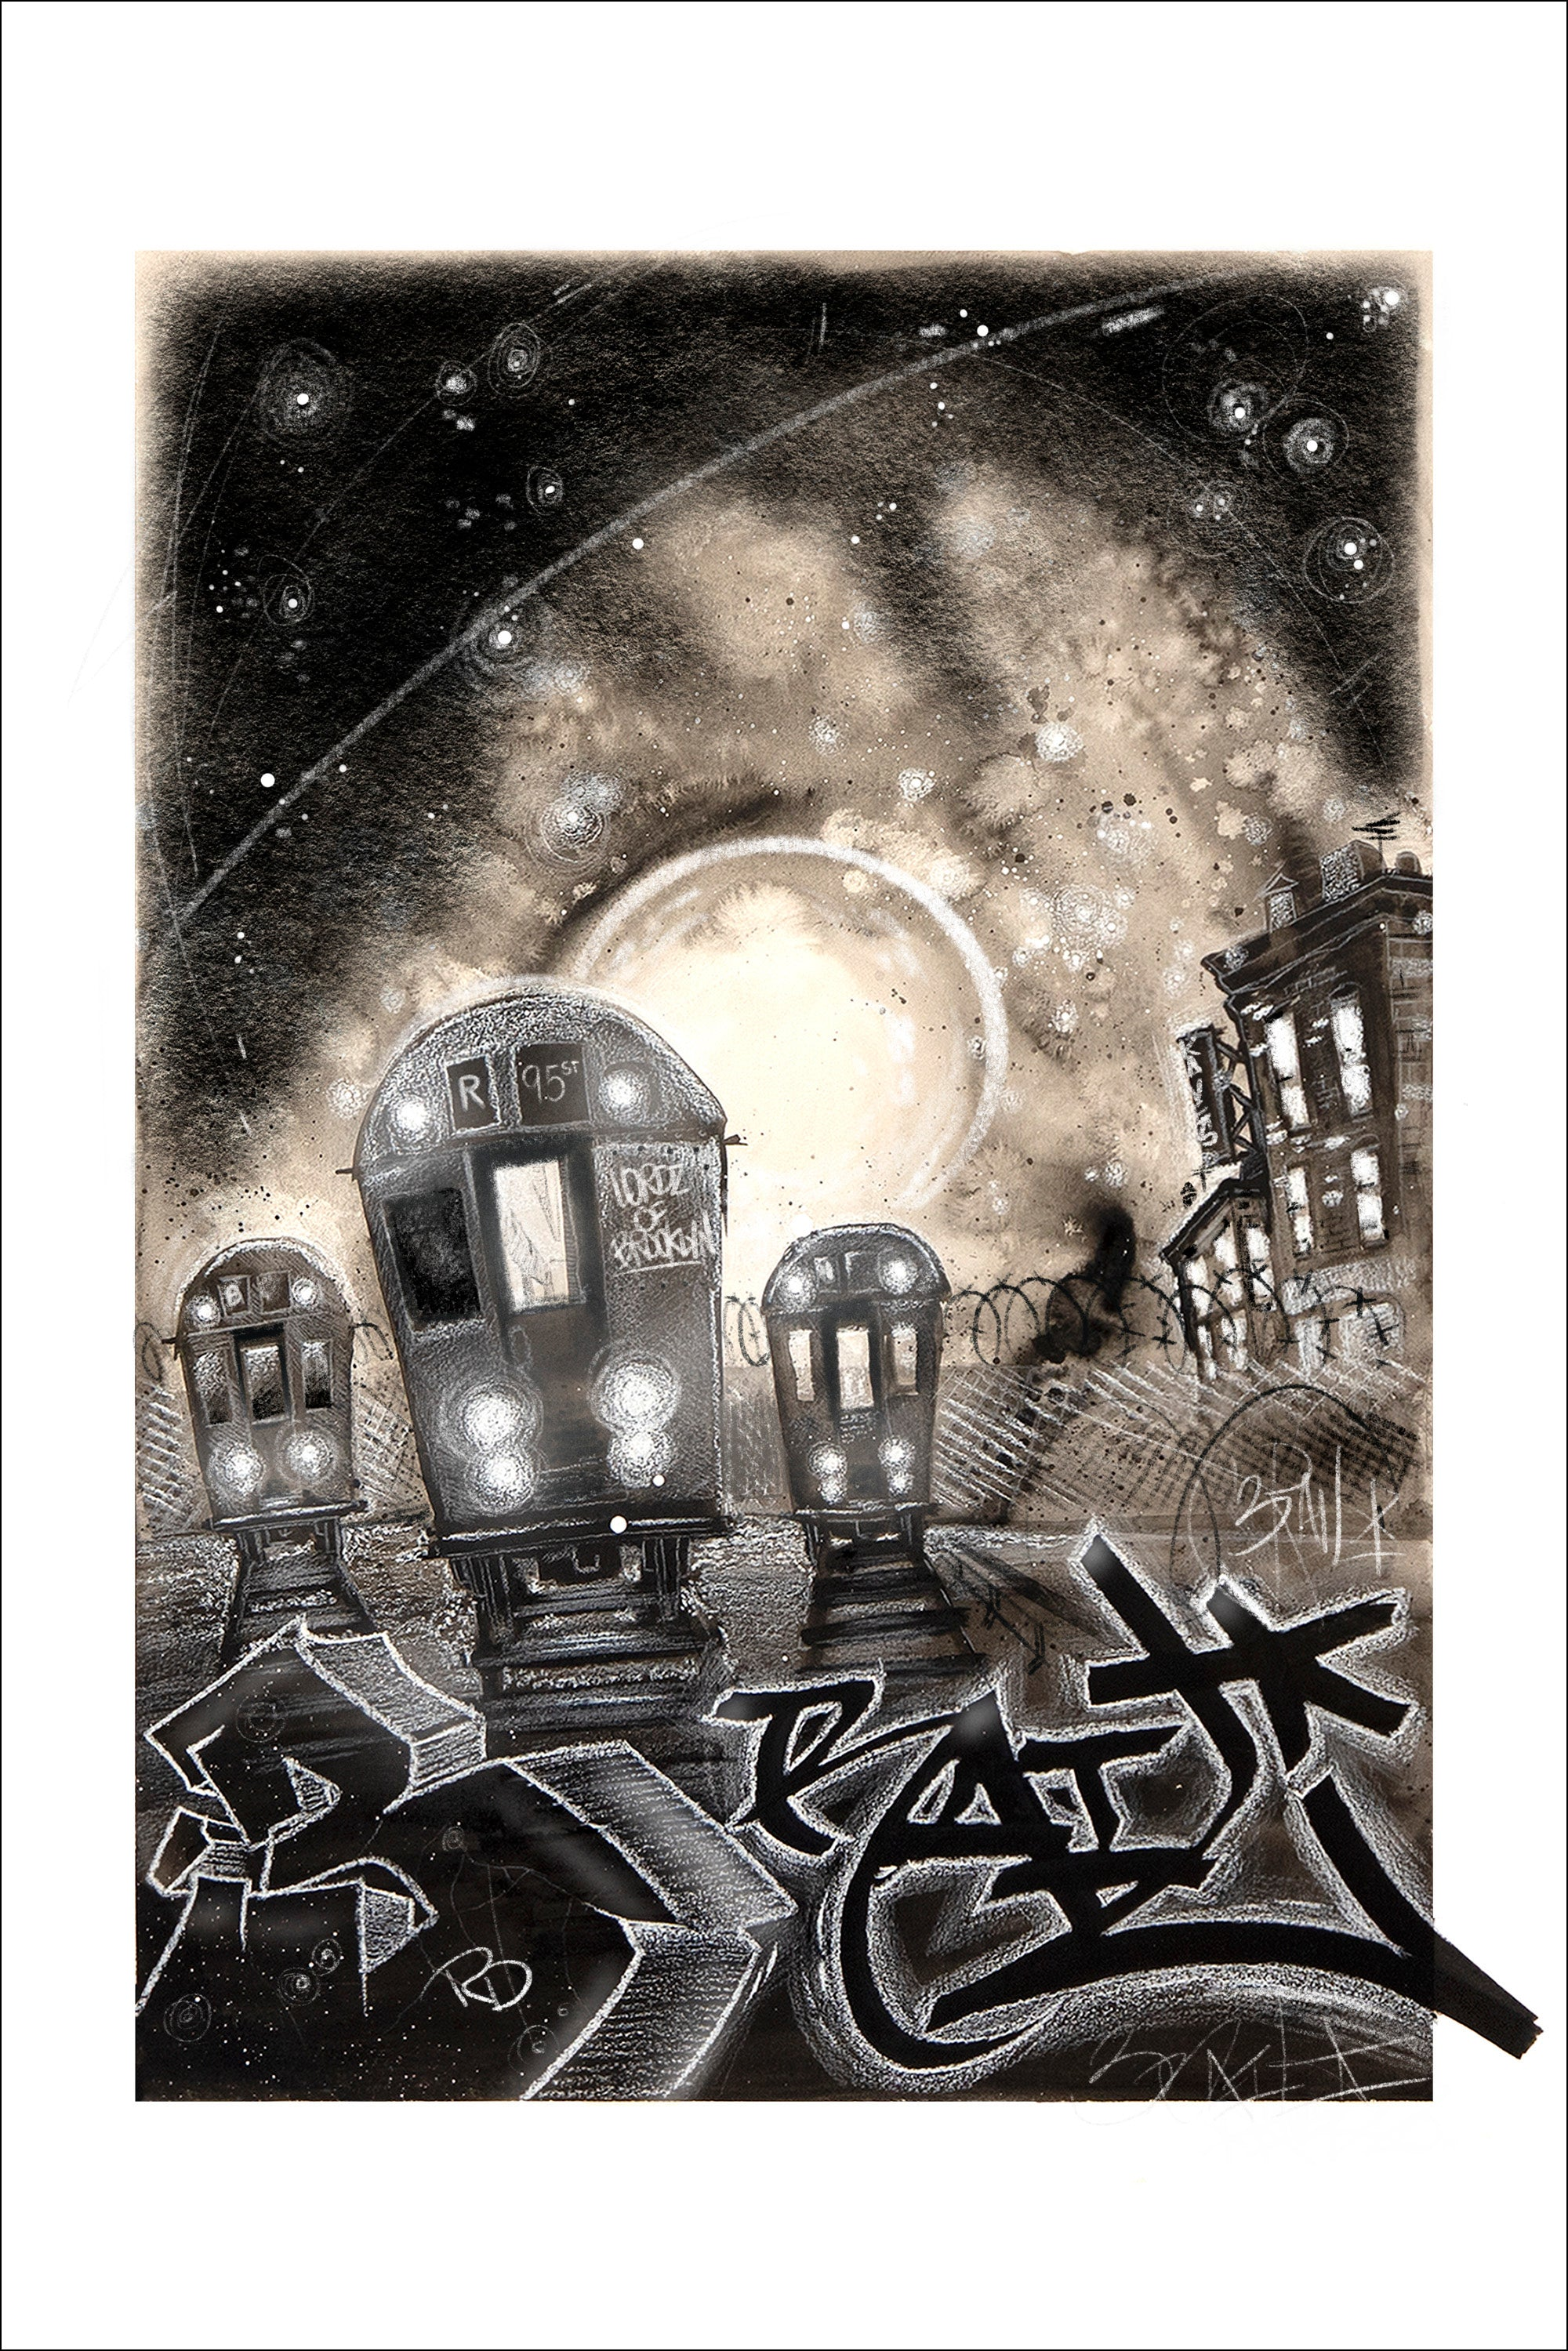 THIRD RAIL SIGNED GICLEE PRINT